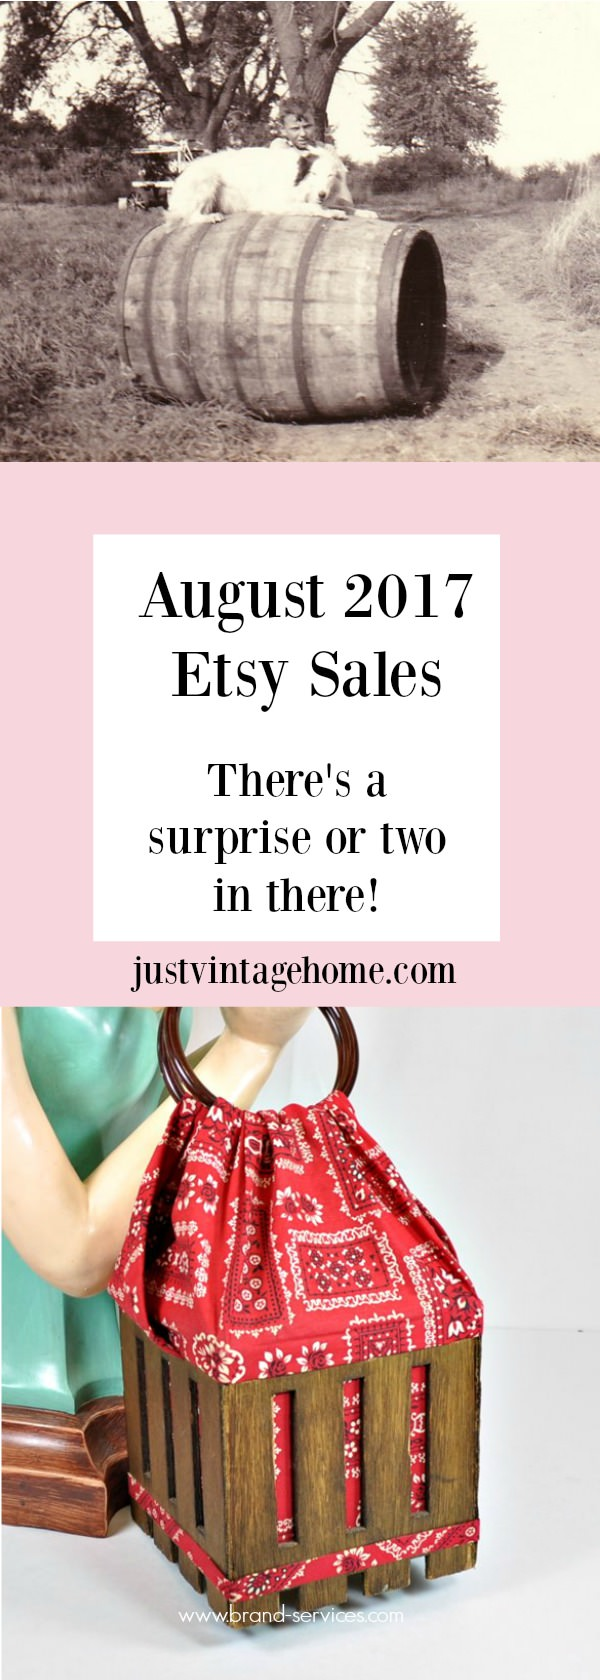 Etsy Sales Report for August 2017